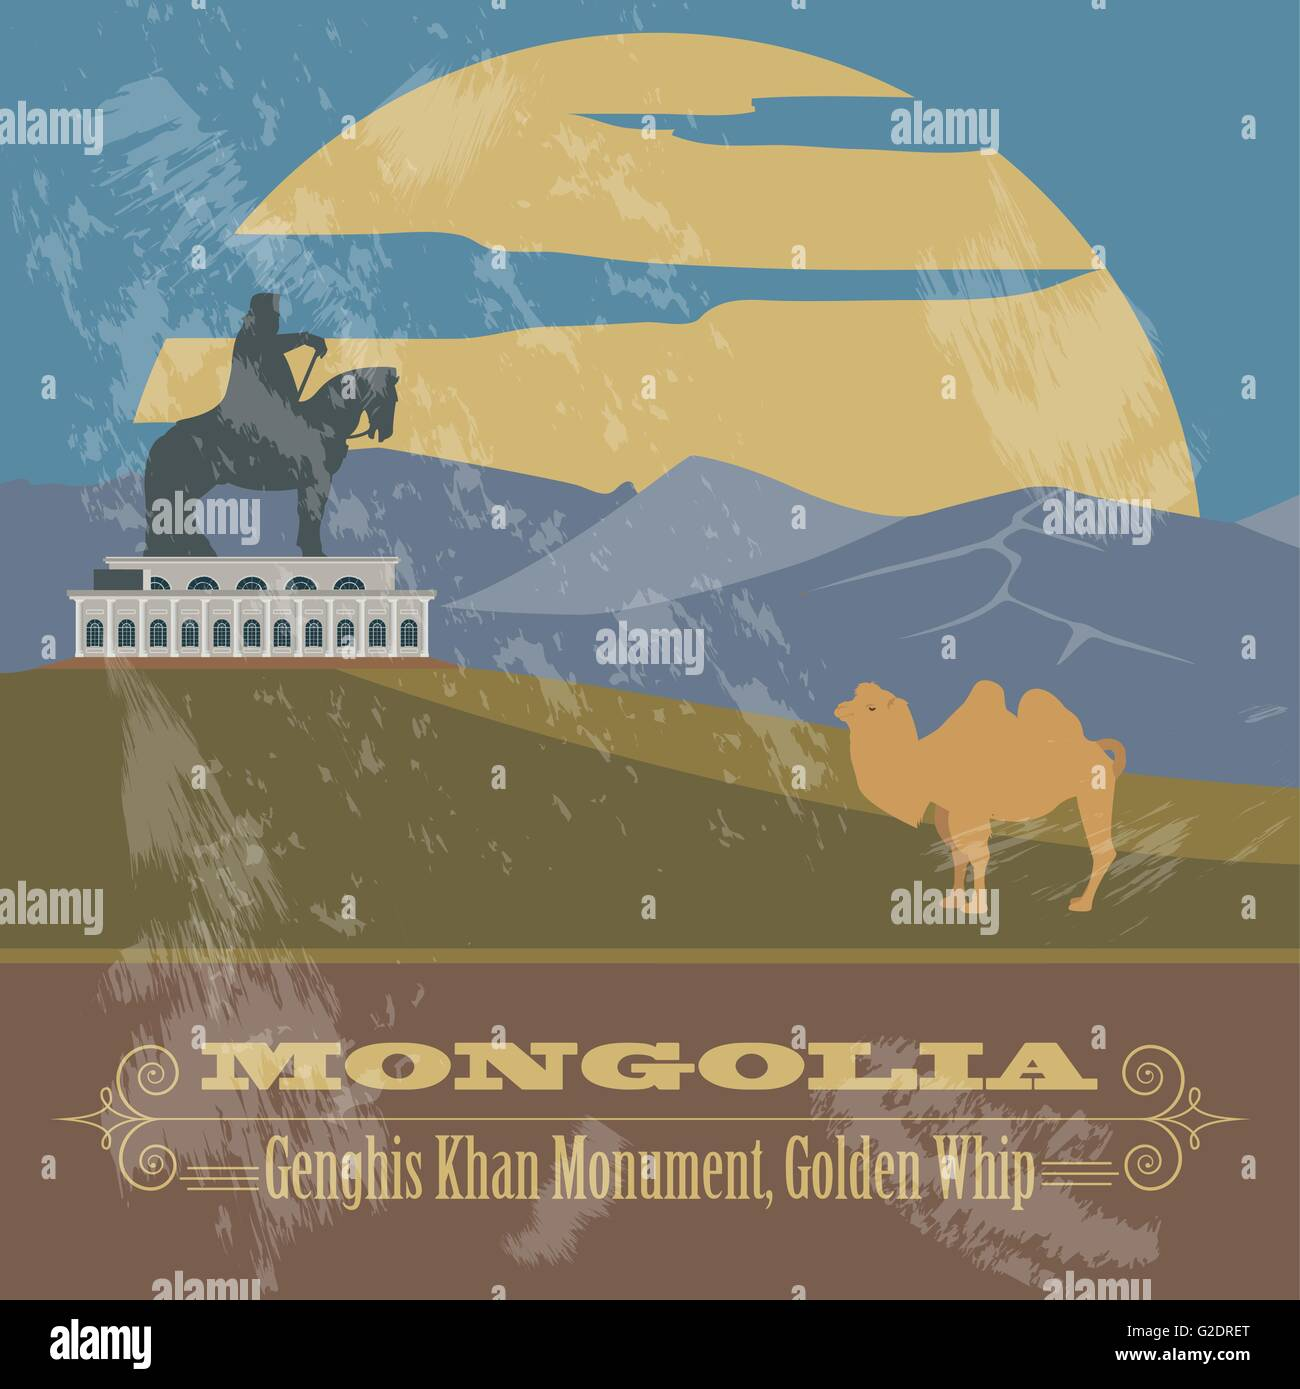 Mongolia. Retro styled image. Vector illustration Stock Vector